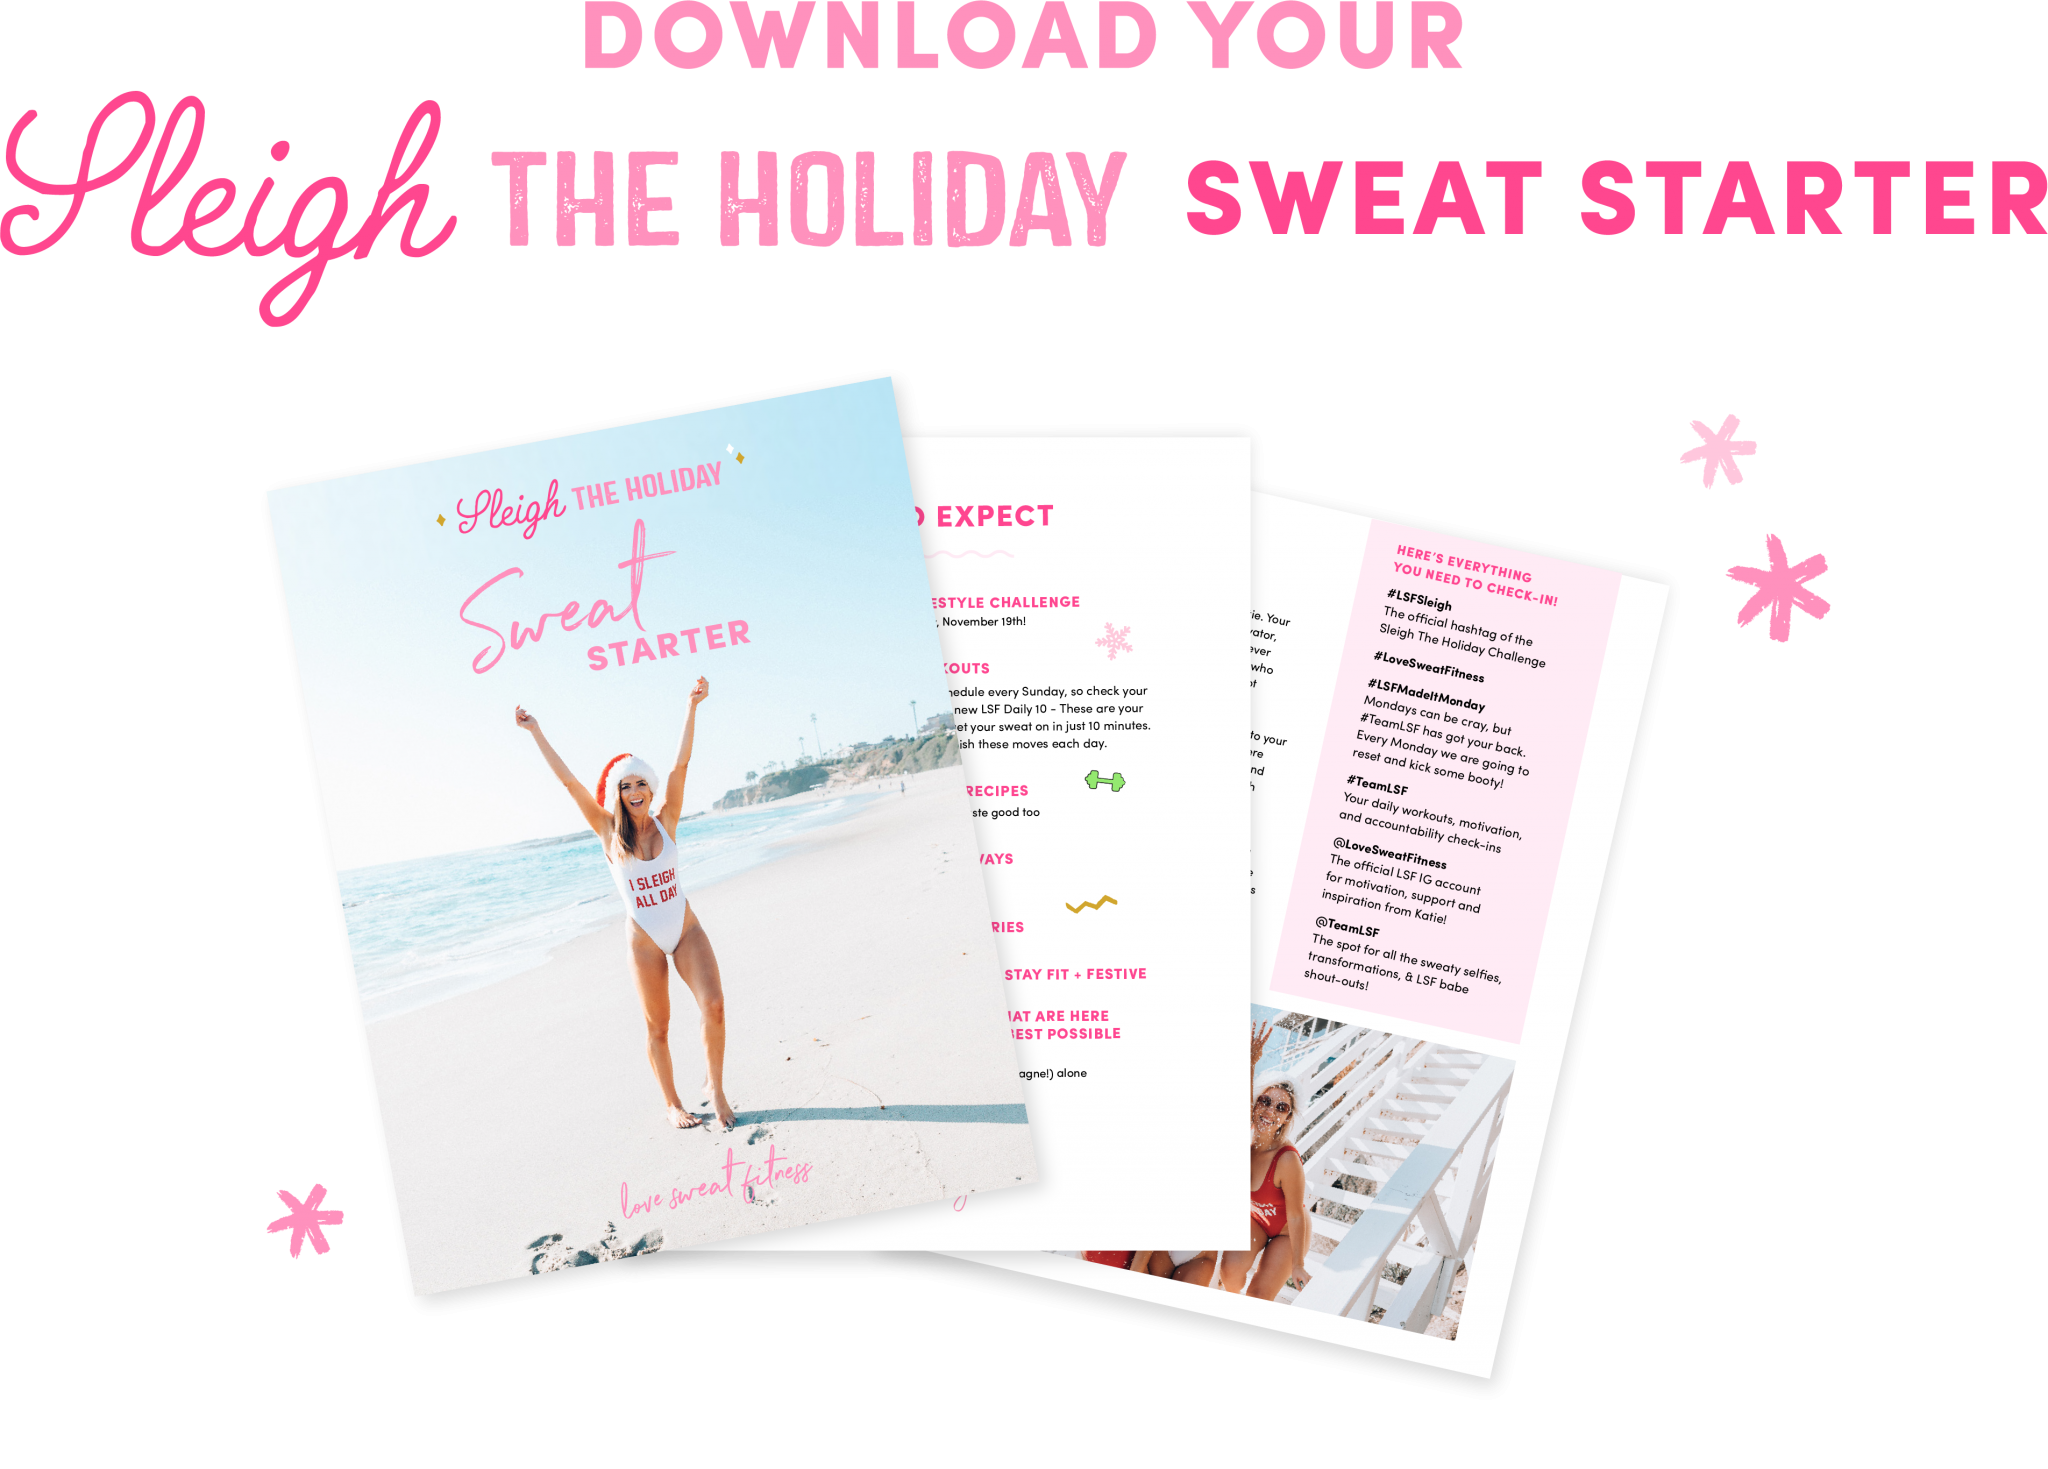 Join the free 5 week Sleigh the Holiday challenge to get fit and slim during the holiday season! Get your FREE Sweat Starter Kit today.